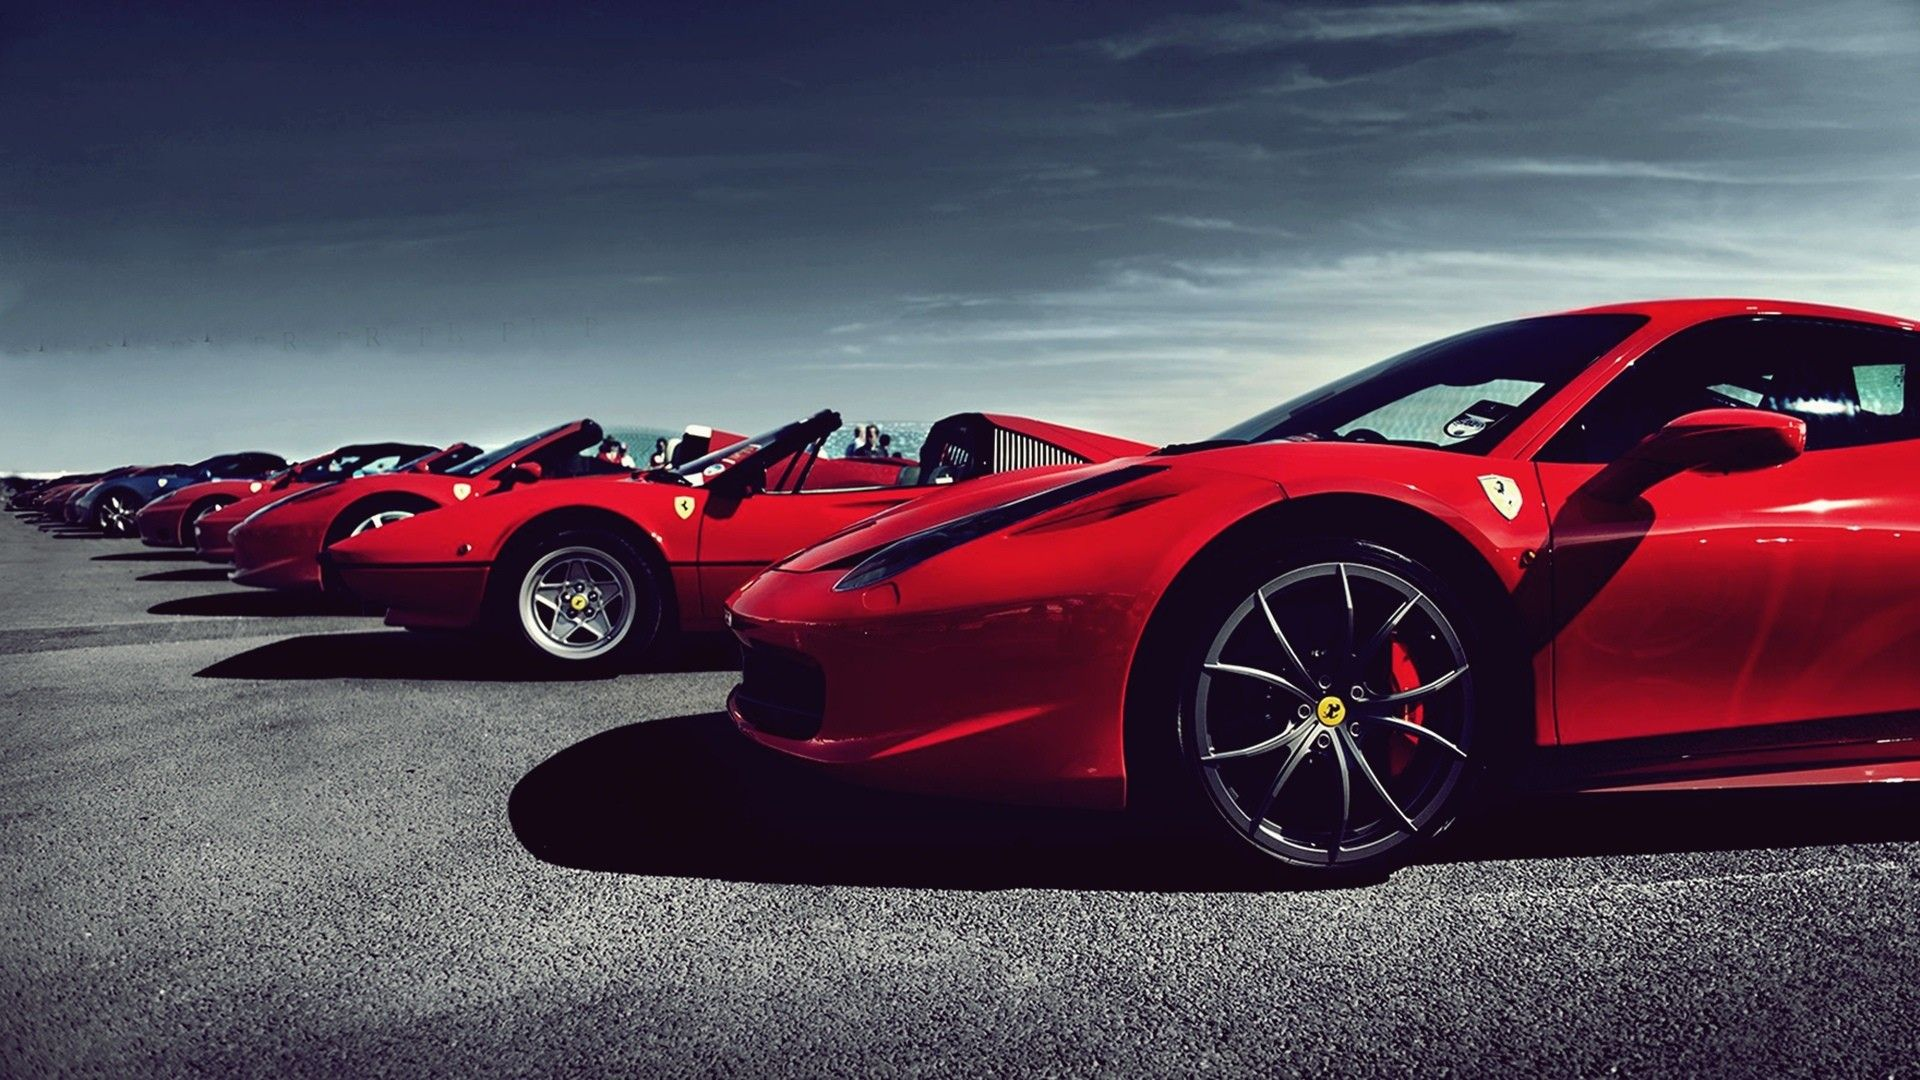 Ferrari Wallpapers 1080p Free Download With Images Ferrari